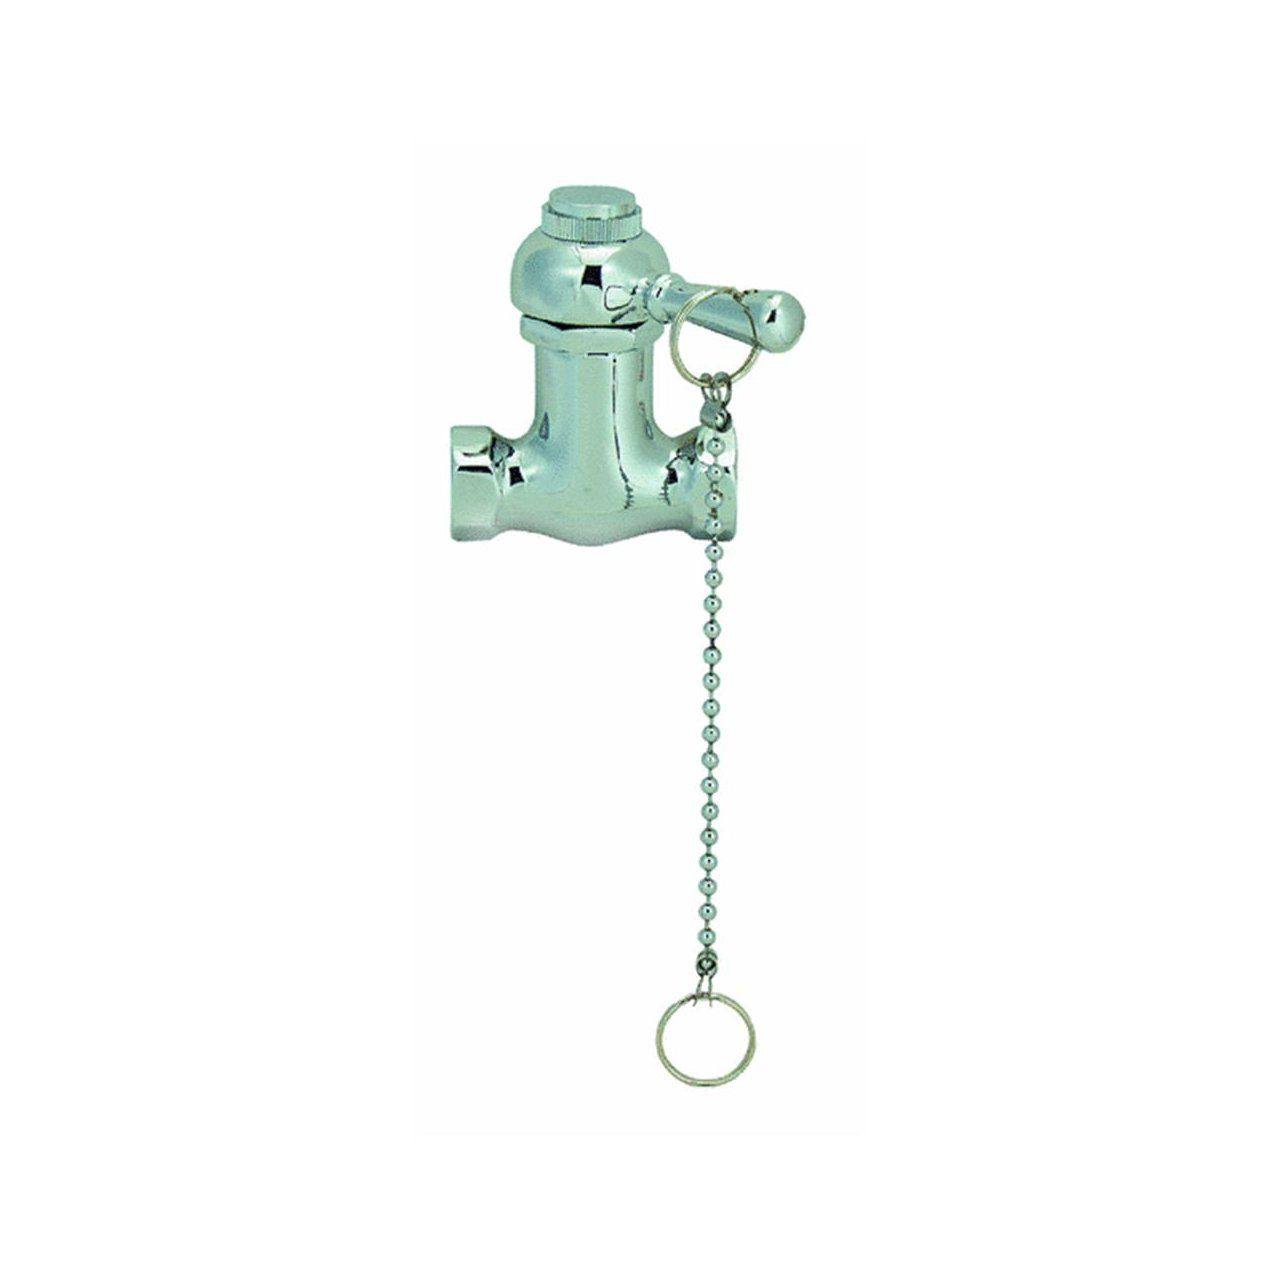 Pull Chain Shower Enchanting Jones Stephens S05100 Selfclosing Heavy Duty Shower Valve With Review